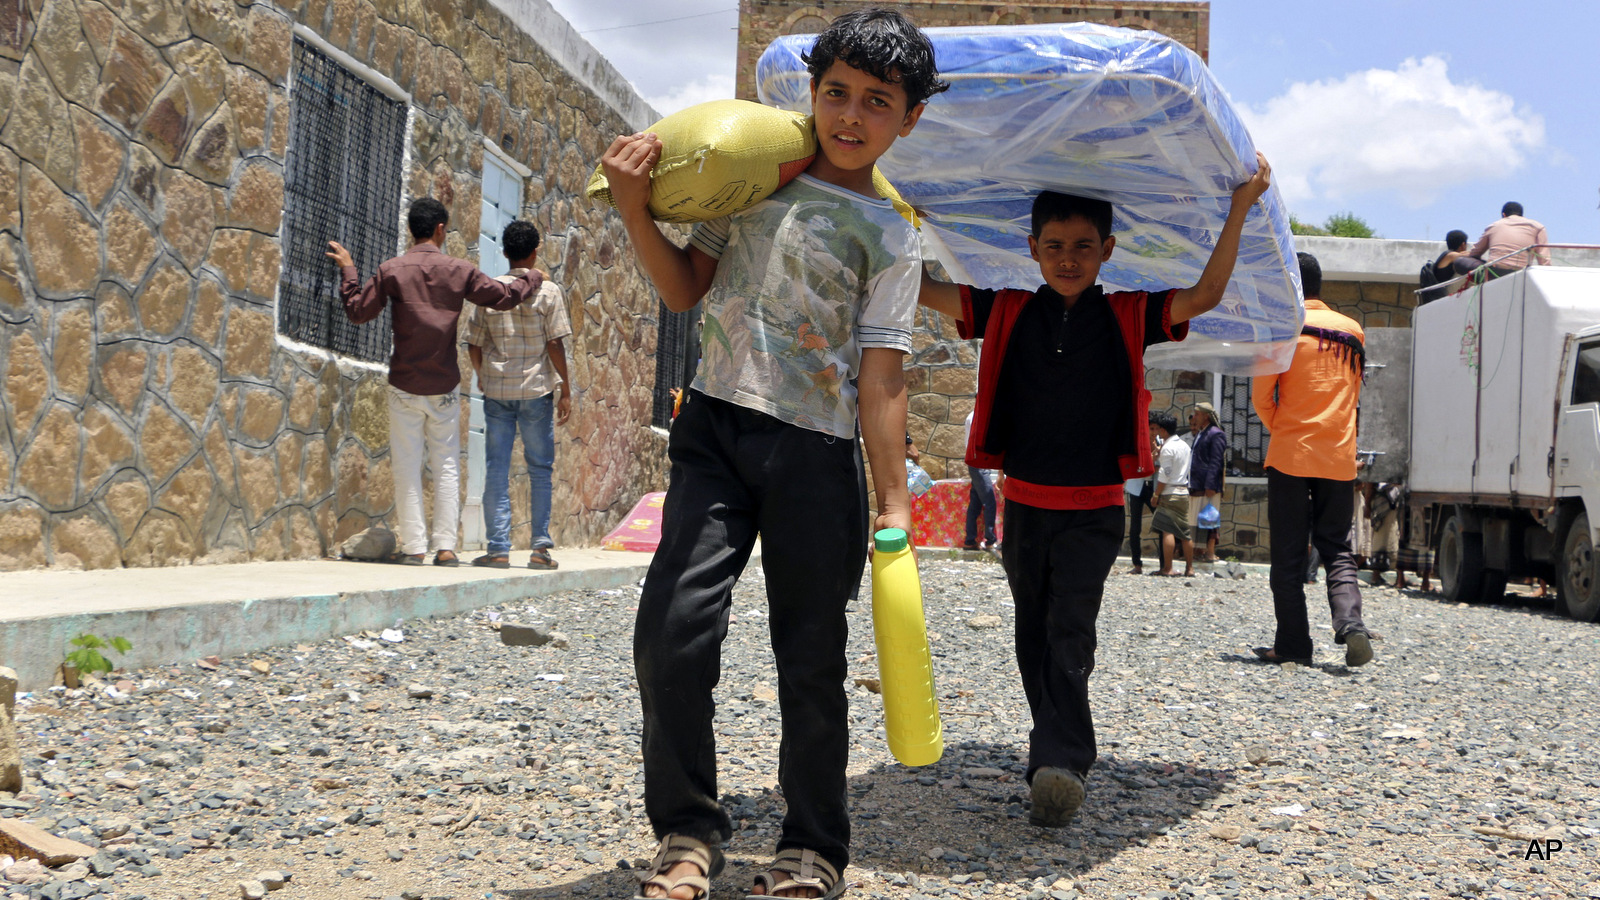 Boys carry relief supplies to their families who fled fighting in the southern city of Aden, during a food distribution effort by Yemeni volunteers, in Taiz, Yemen.